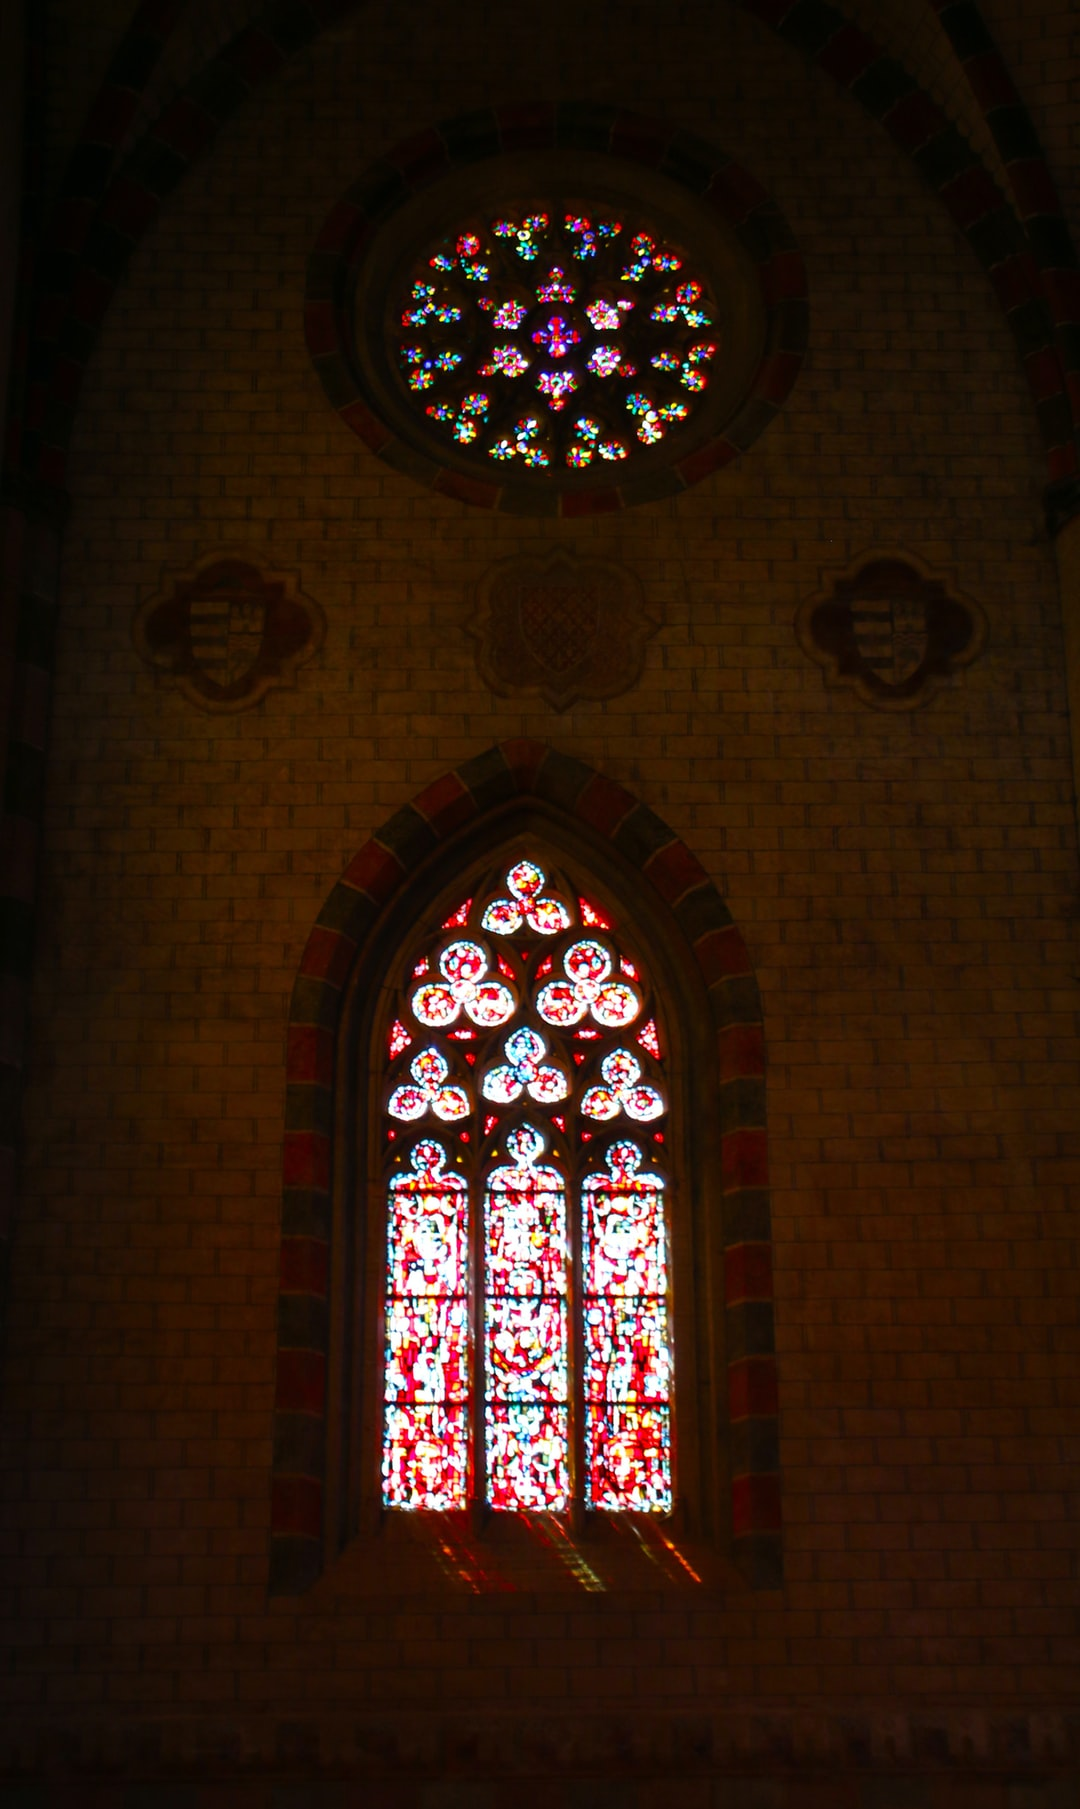 Simple game of contrast. As seen in the Couvent des Jacobins Cathedral, Toulouse, France.